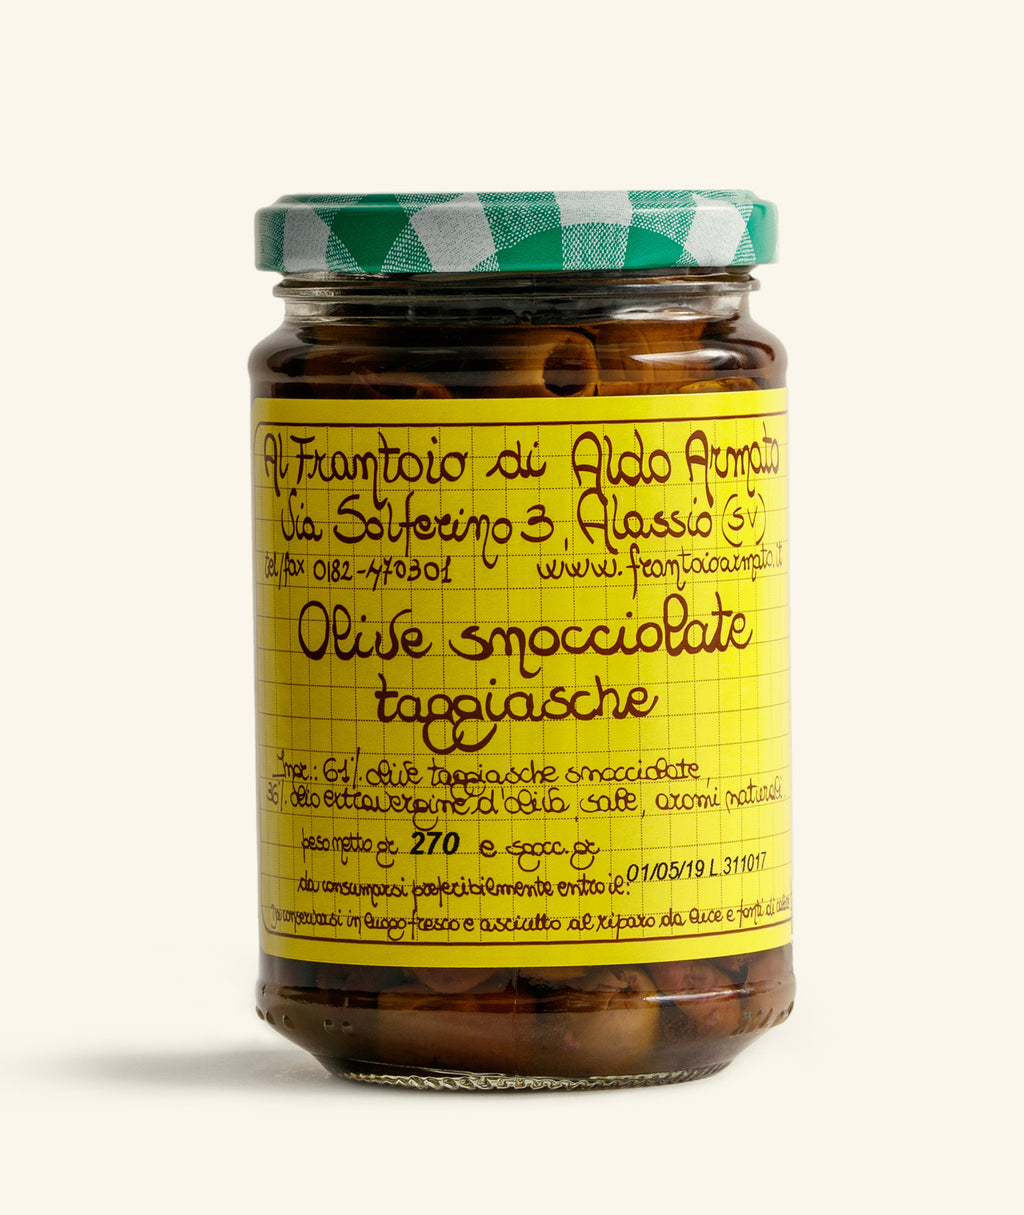 Snocciolate - Pitted Olives